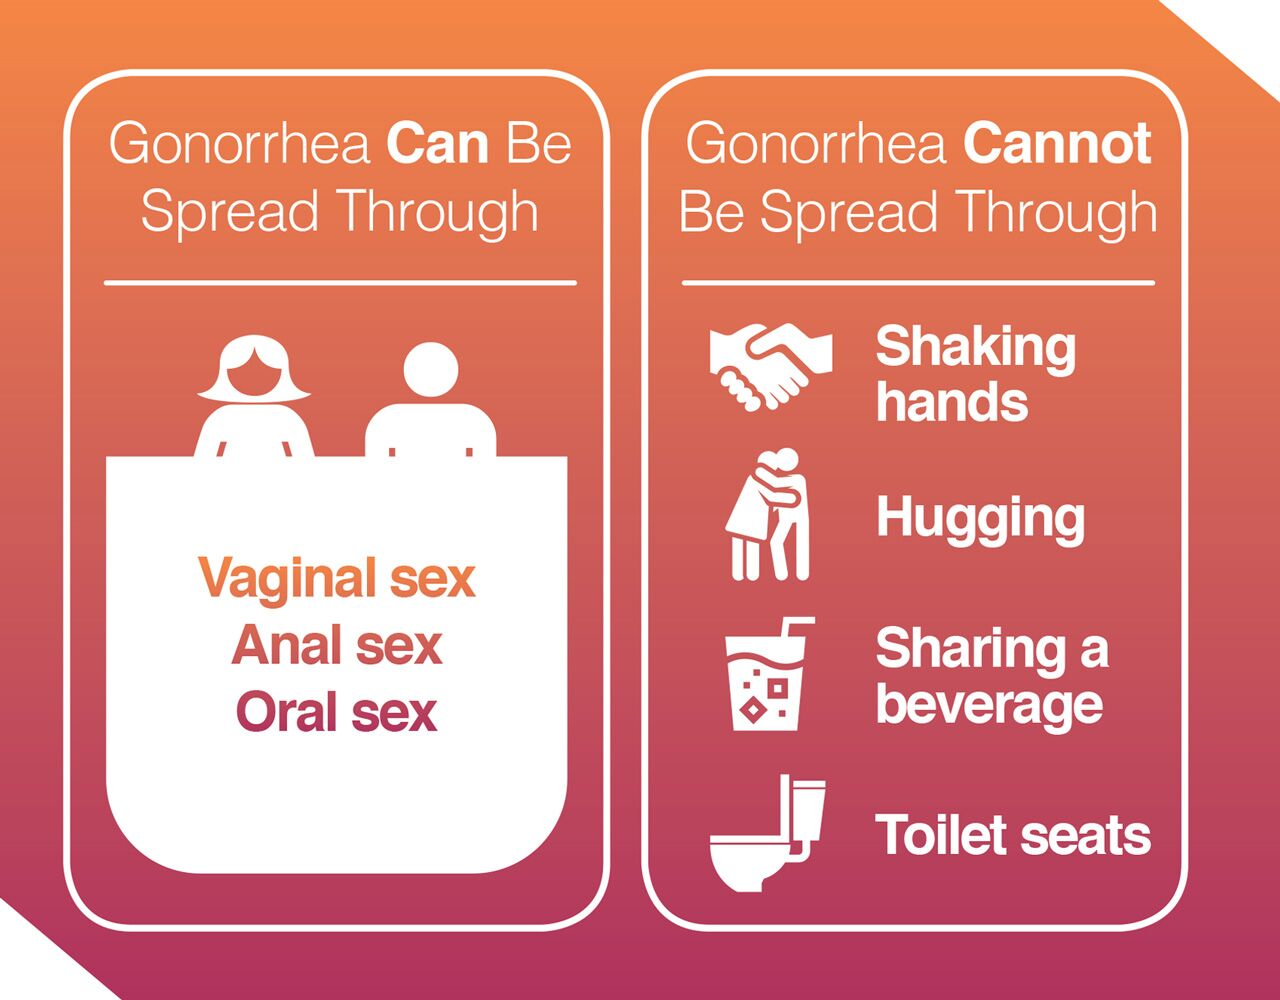 Gonorrhea causes, symptoms, and treatment